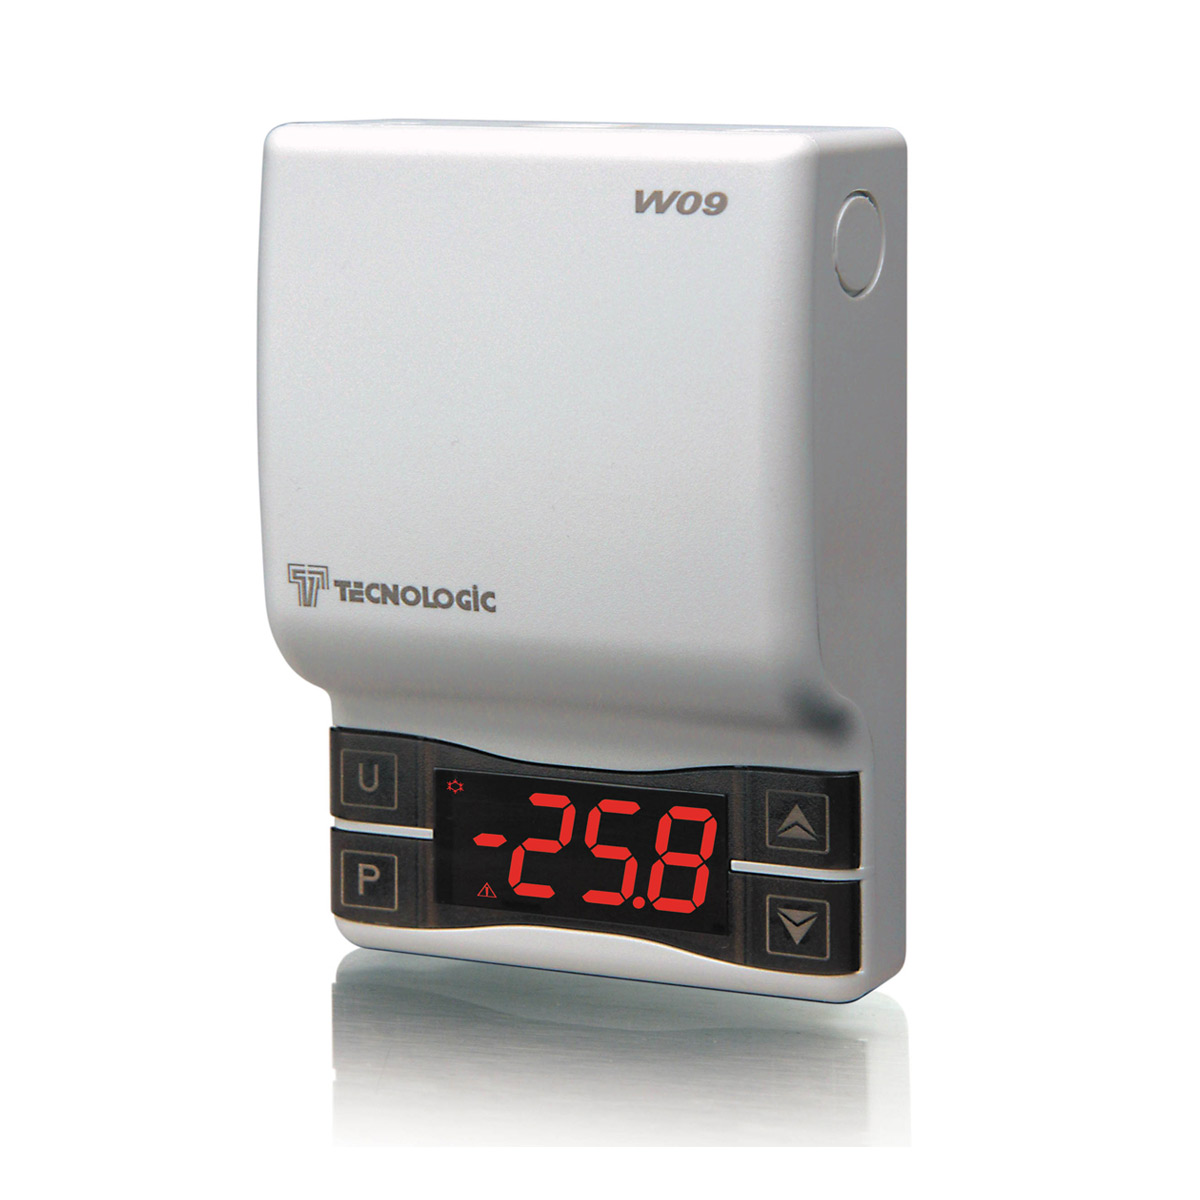 WALL MOUNTED DIGITAL THERMOSTATS